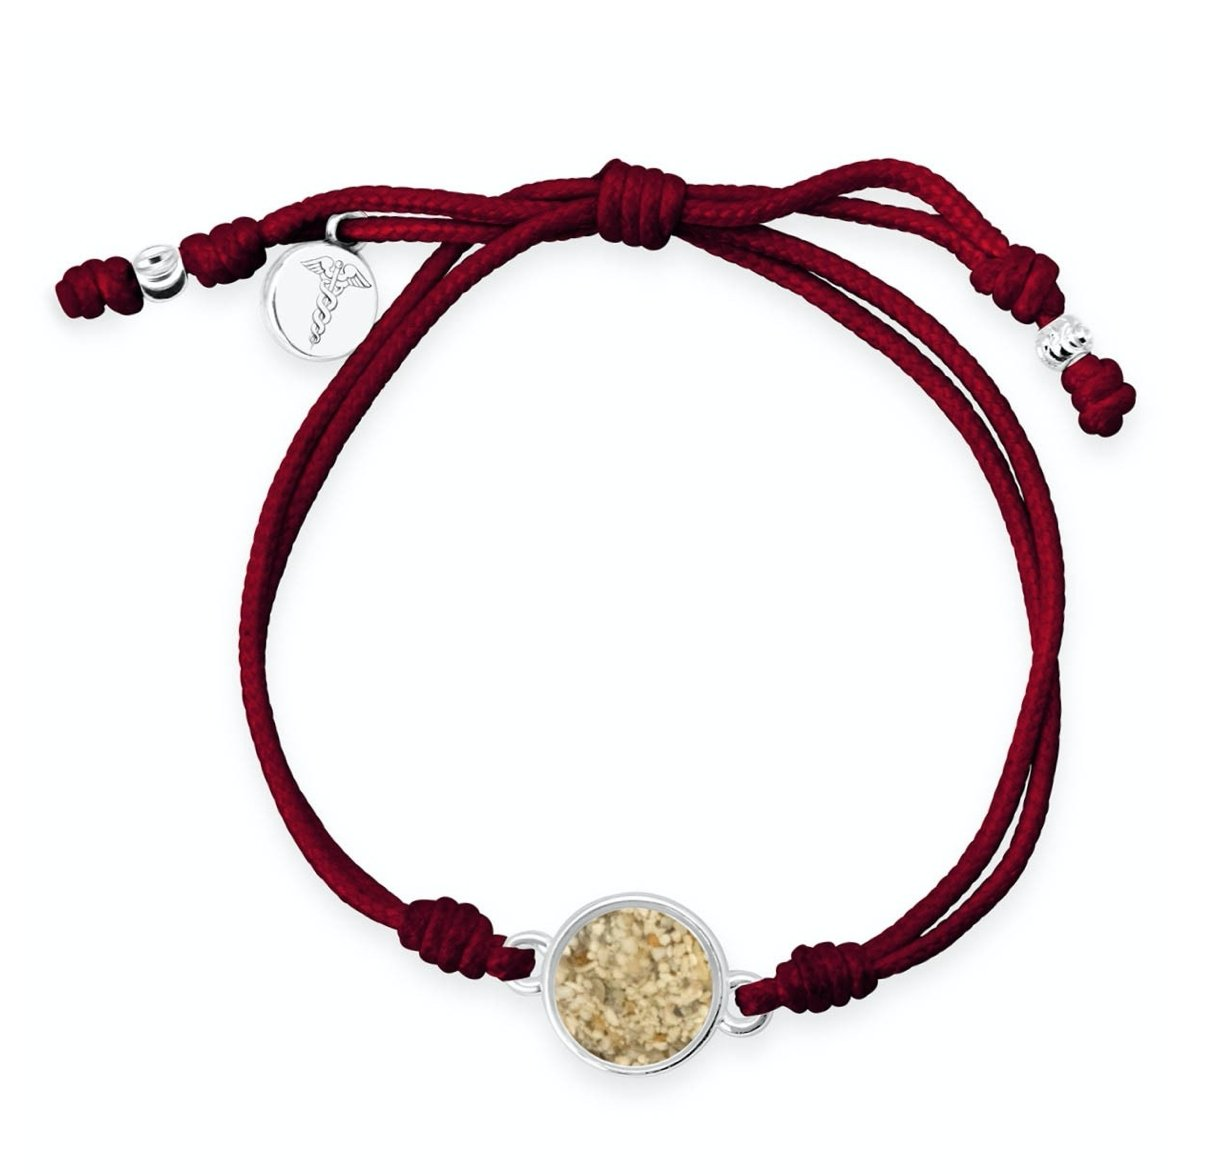 TTW MAROON STAFF OF HERMES/HUMANITARIAN MEDICAL - Molly's! A Chic and Unique Boutique